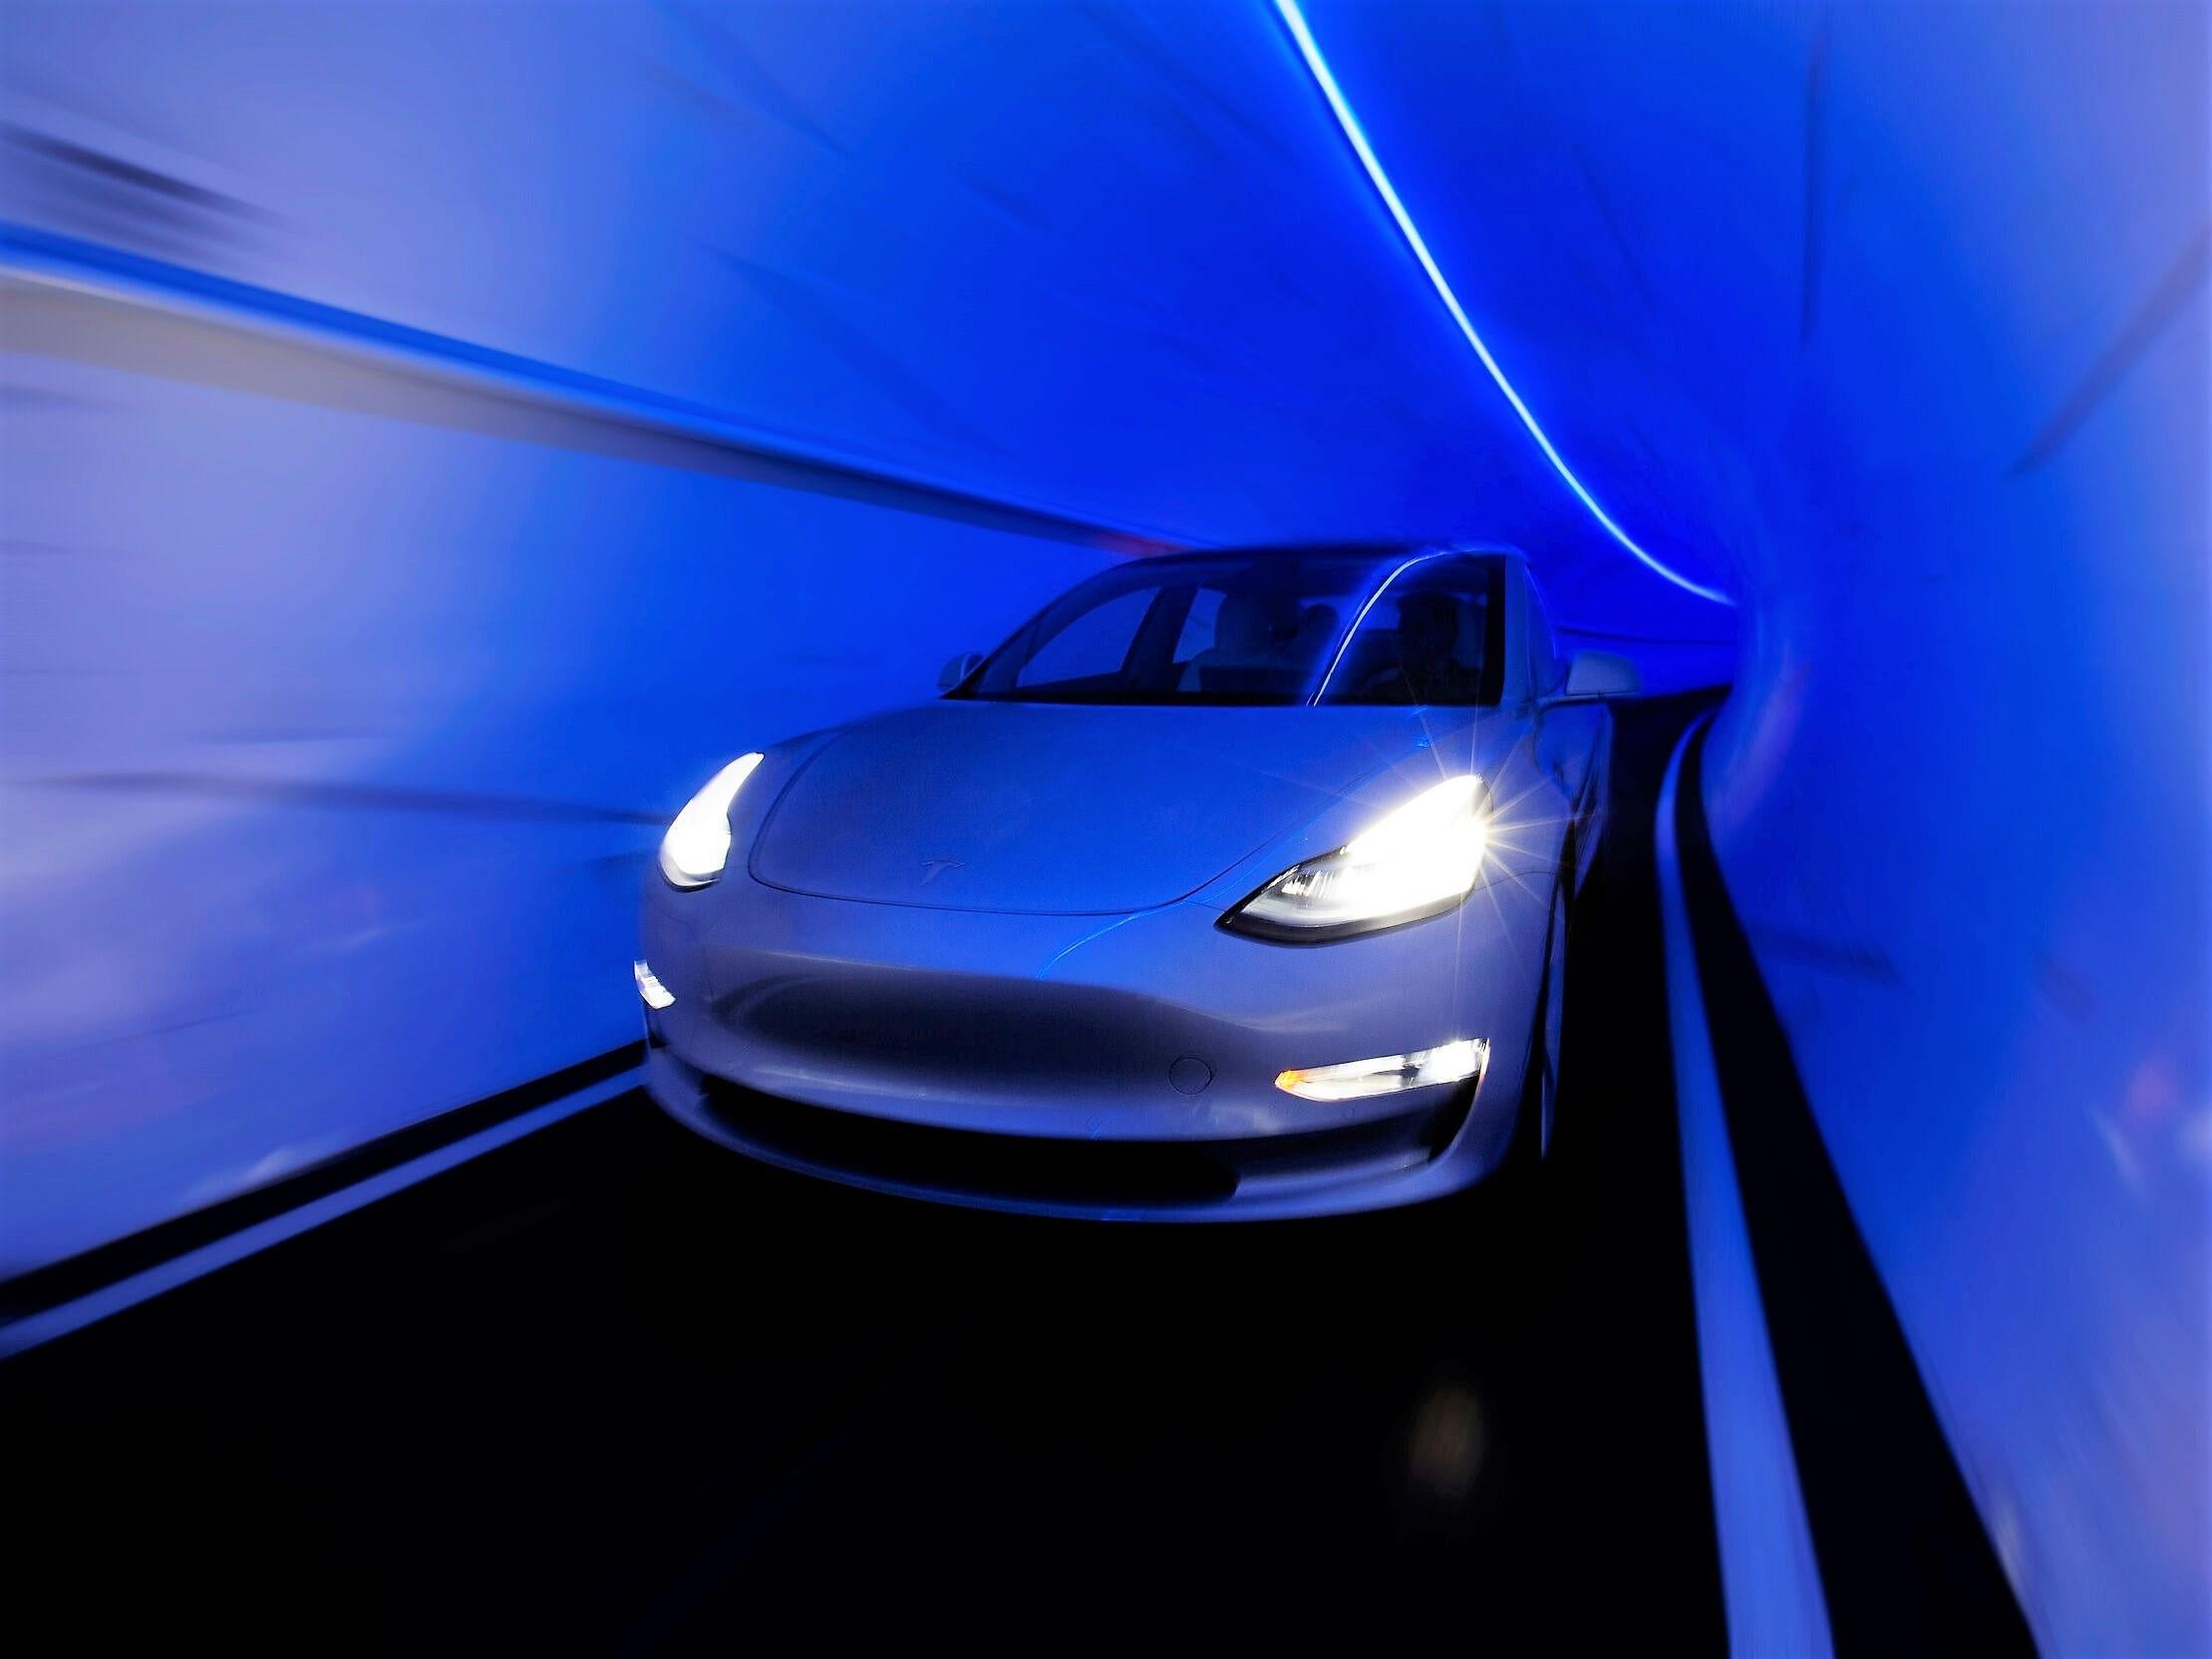 Elon Musk S Tunnel Digging Venture Just Got Approval For Expansion The Independent The Independent